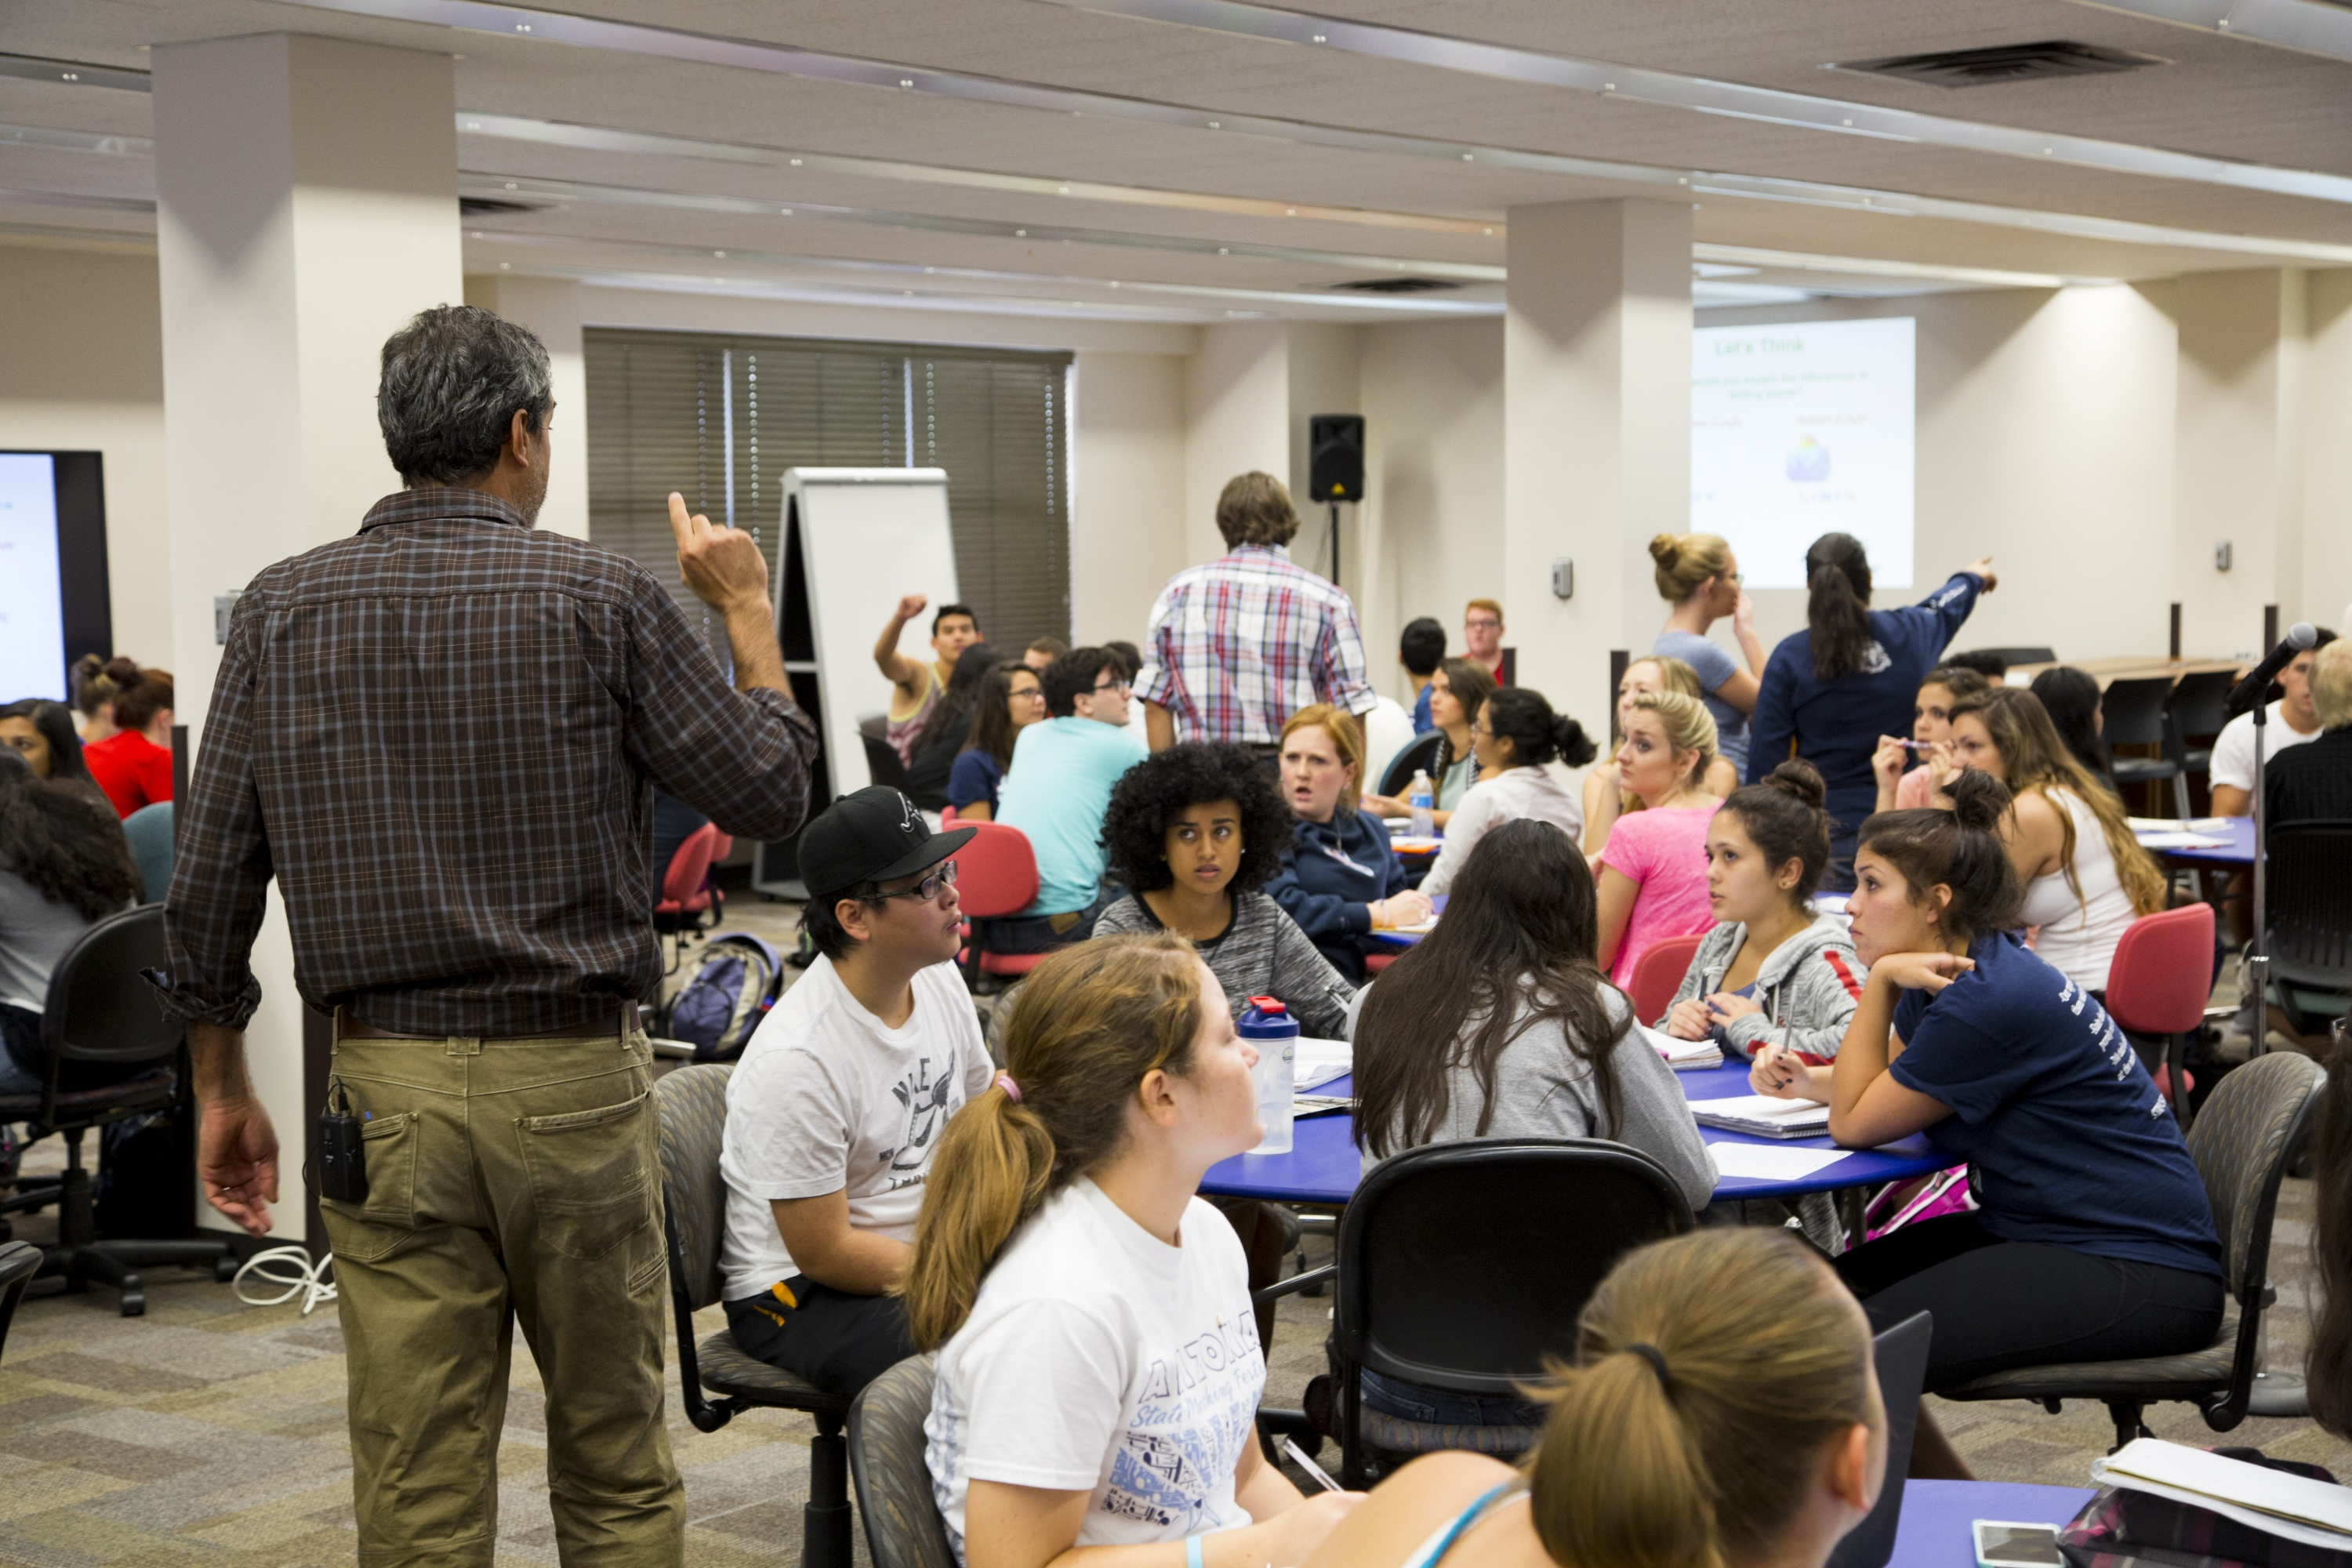 Instructor standing among students working in groups at several tables